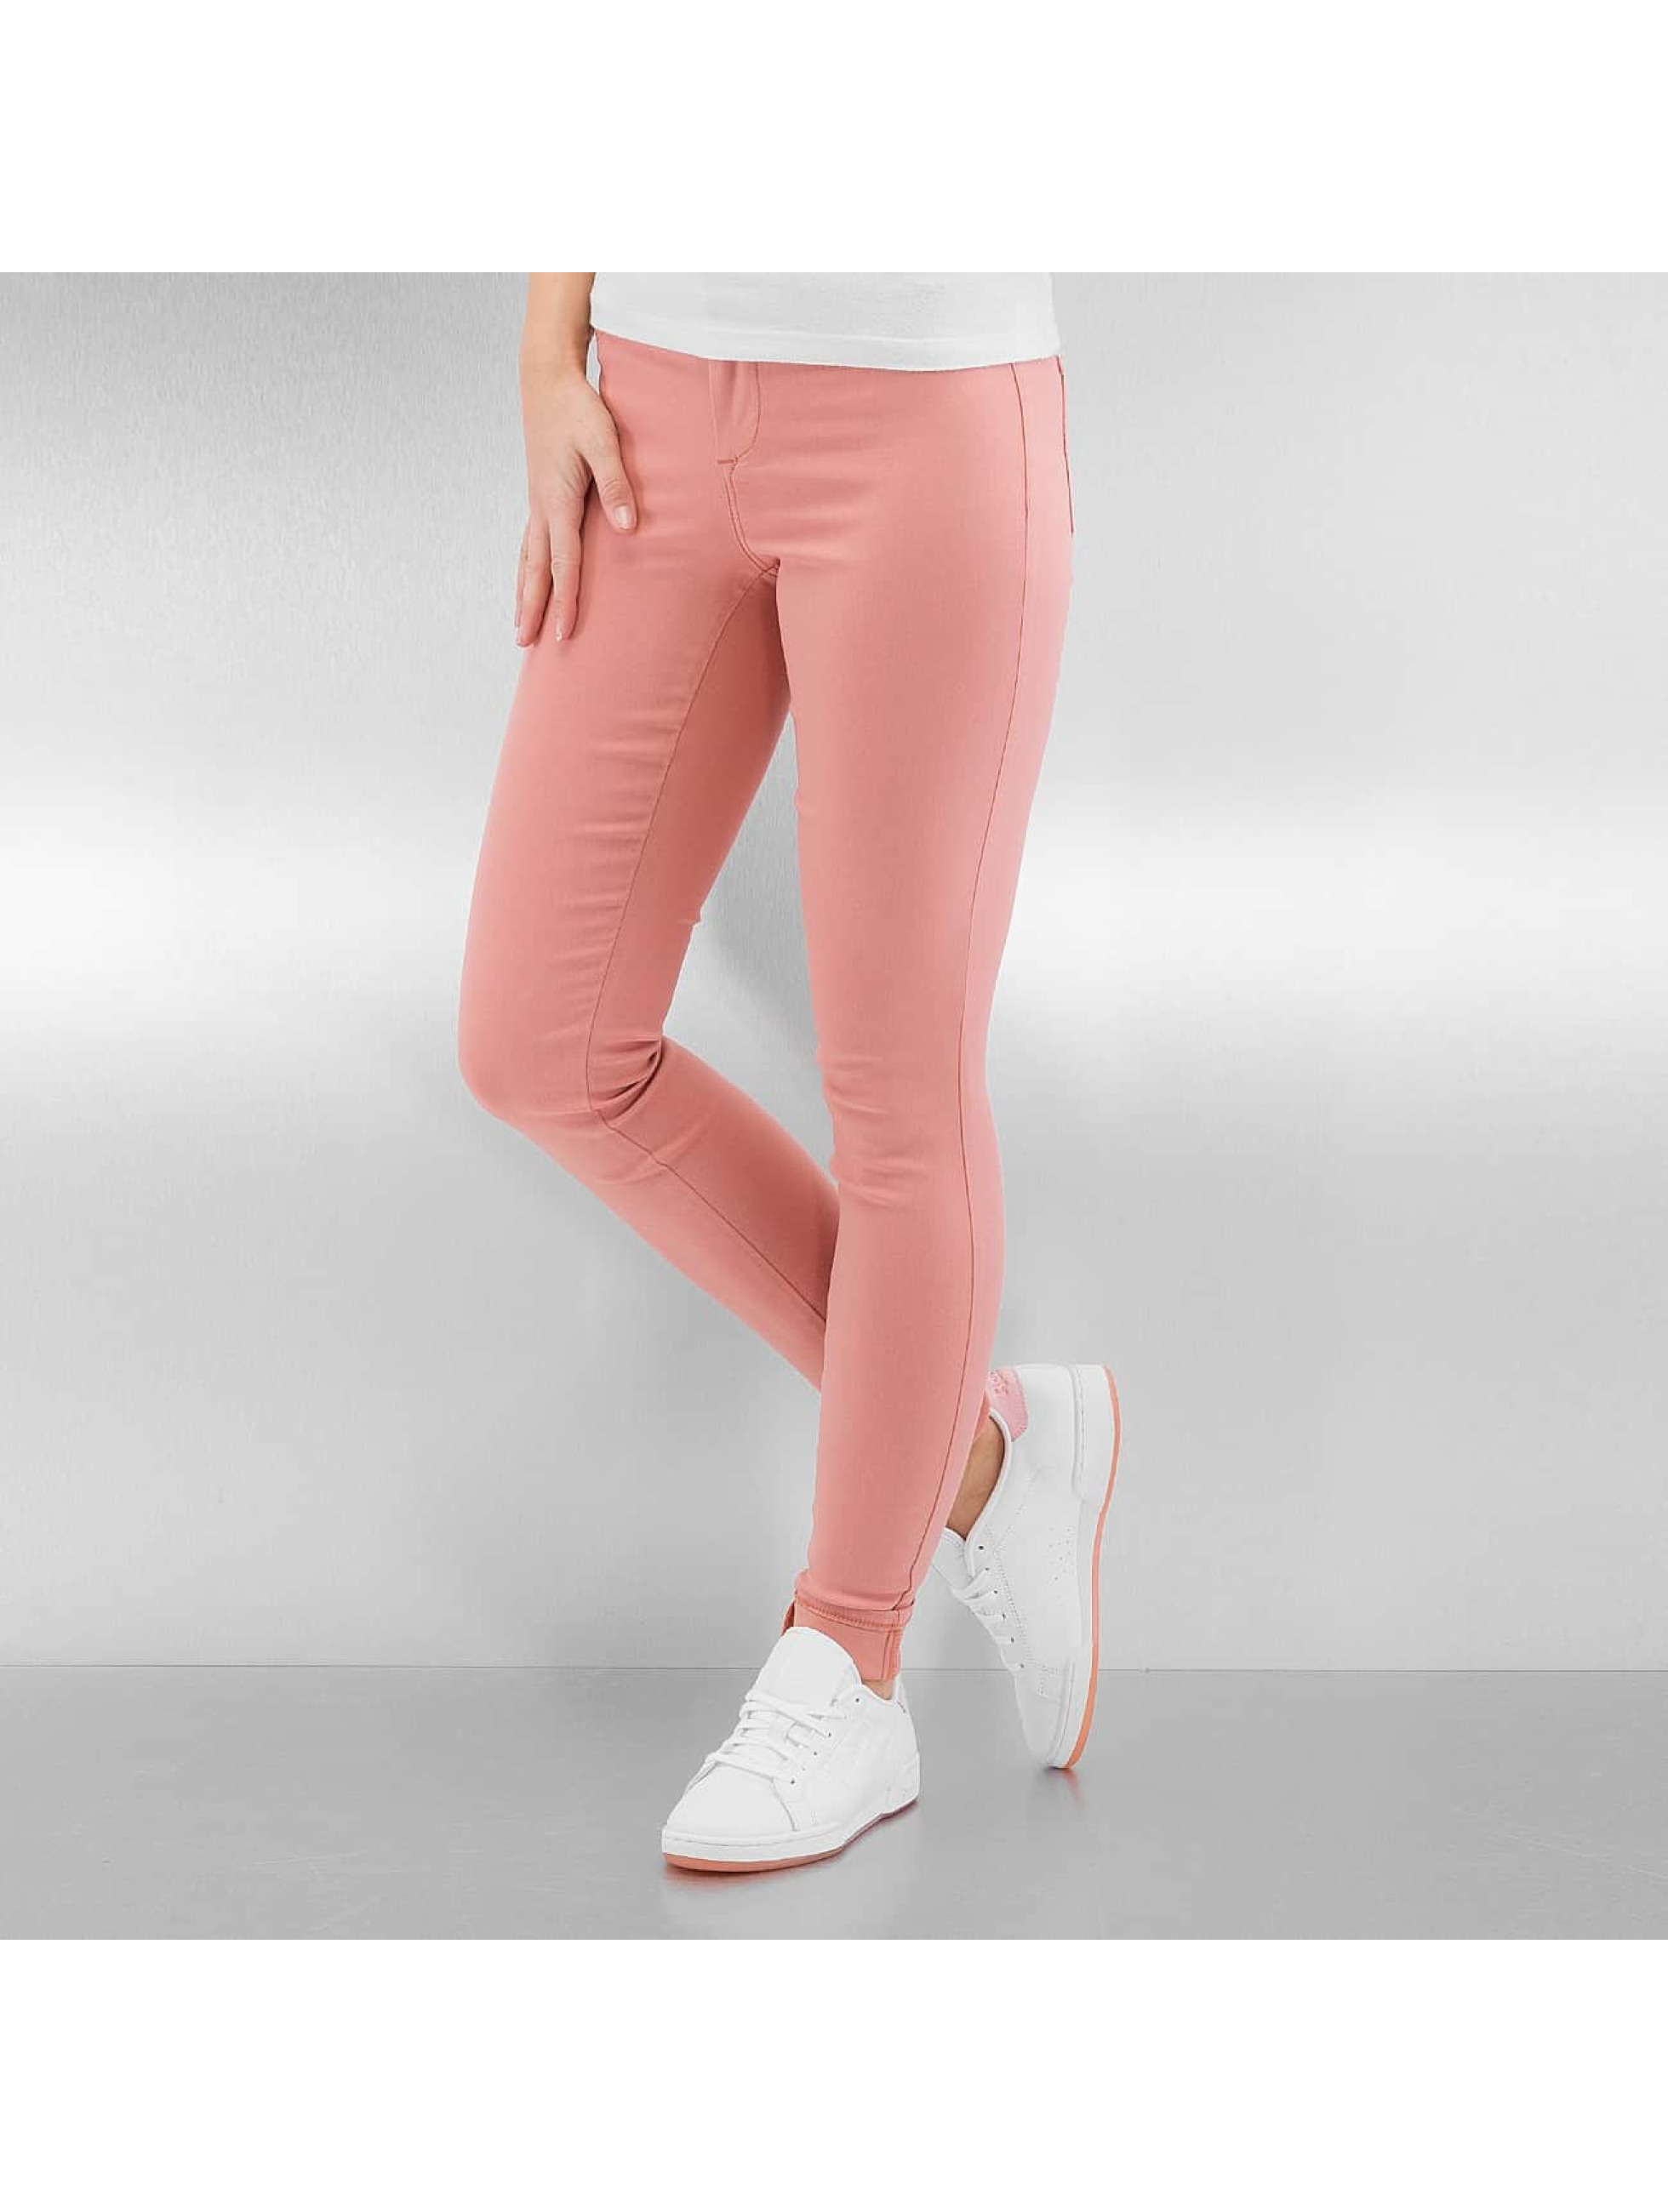 Pieces Frauen Legging pcSkin Wear in rosa